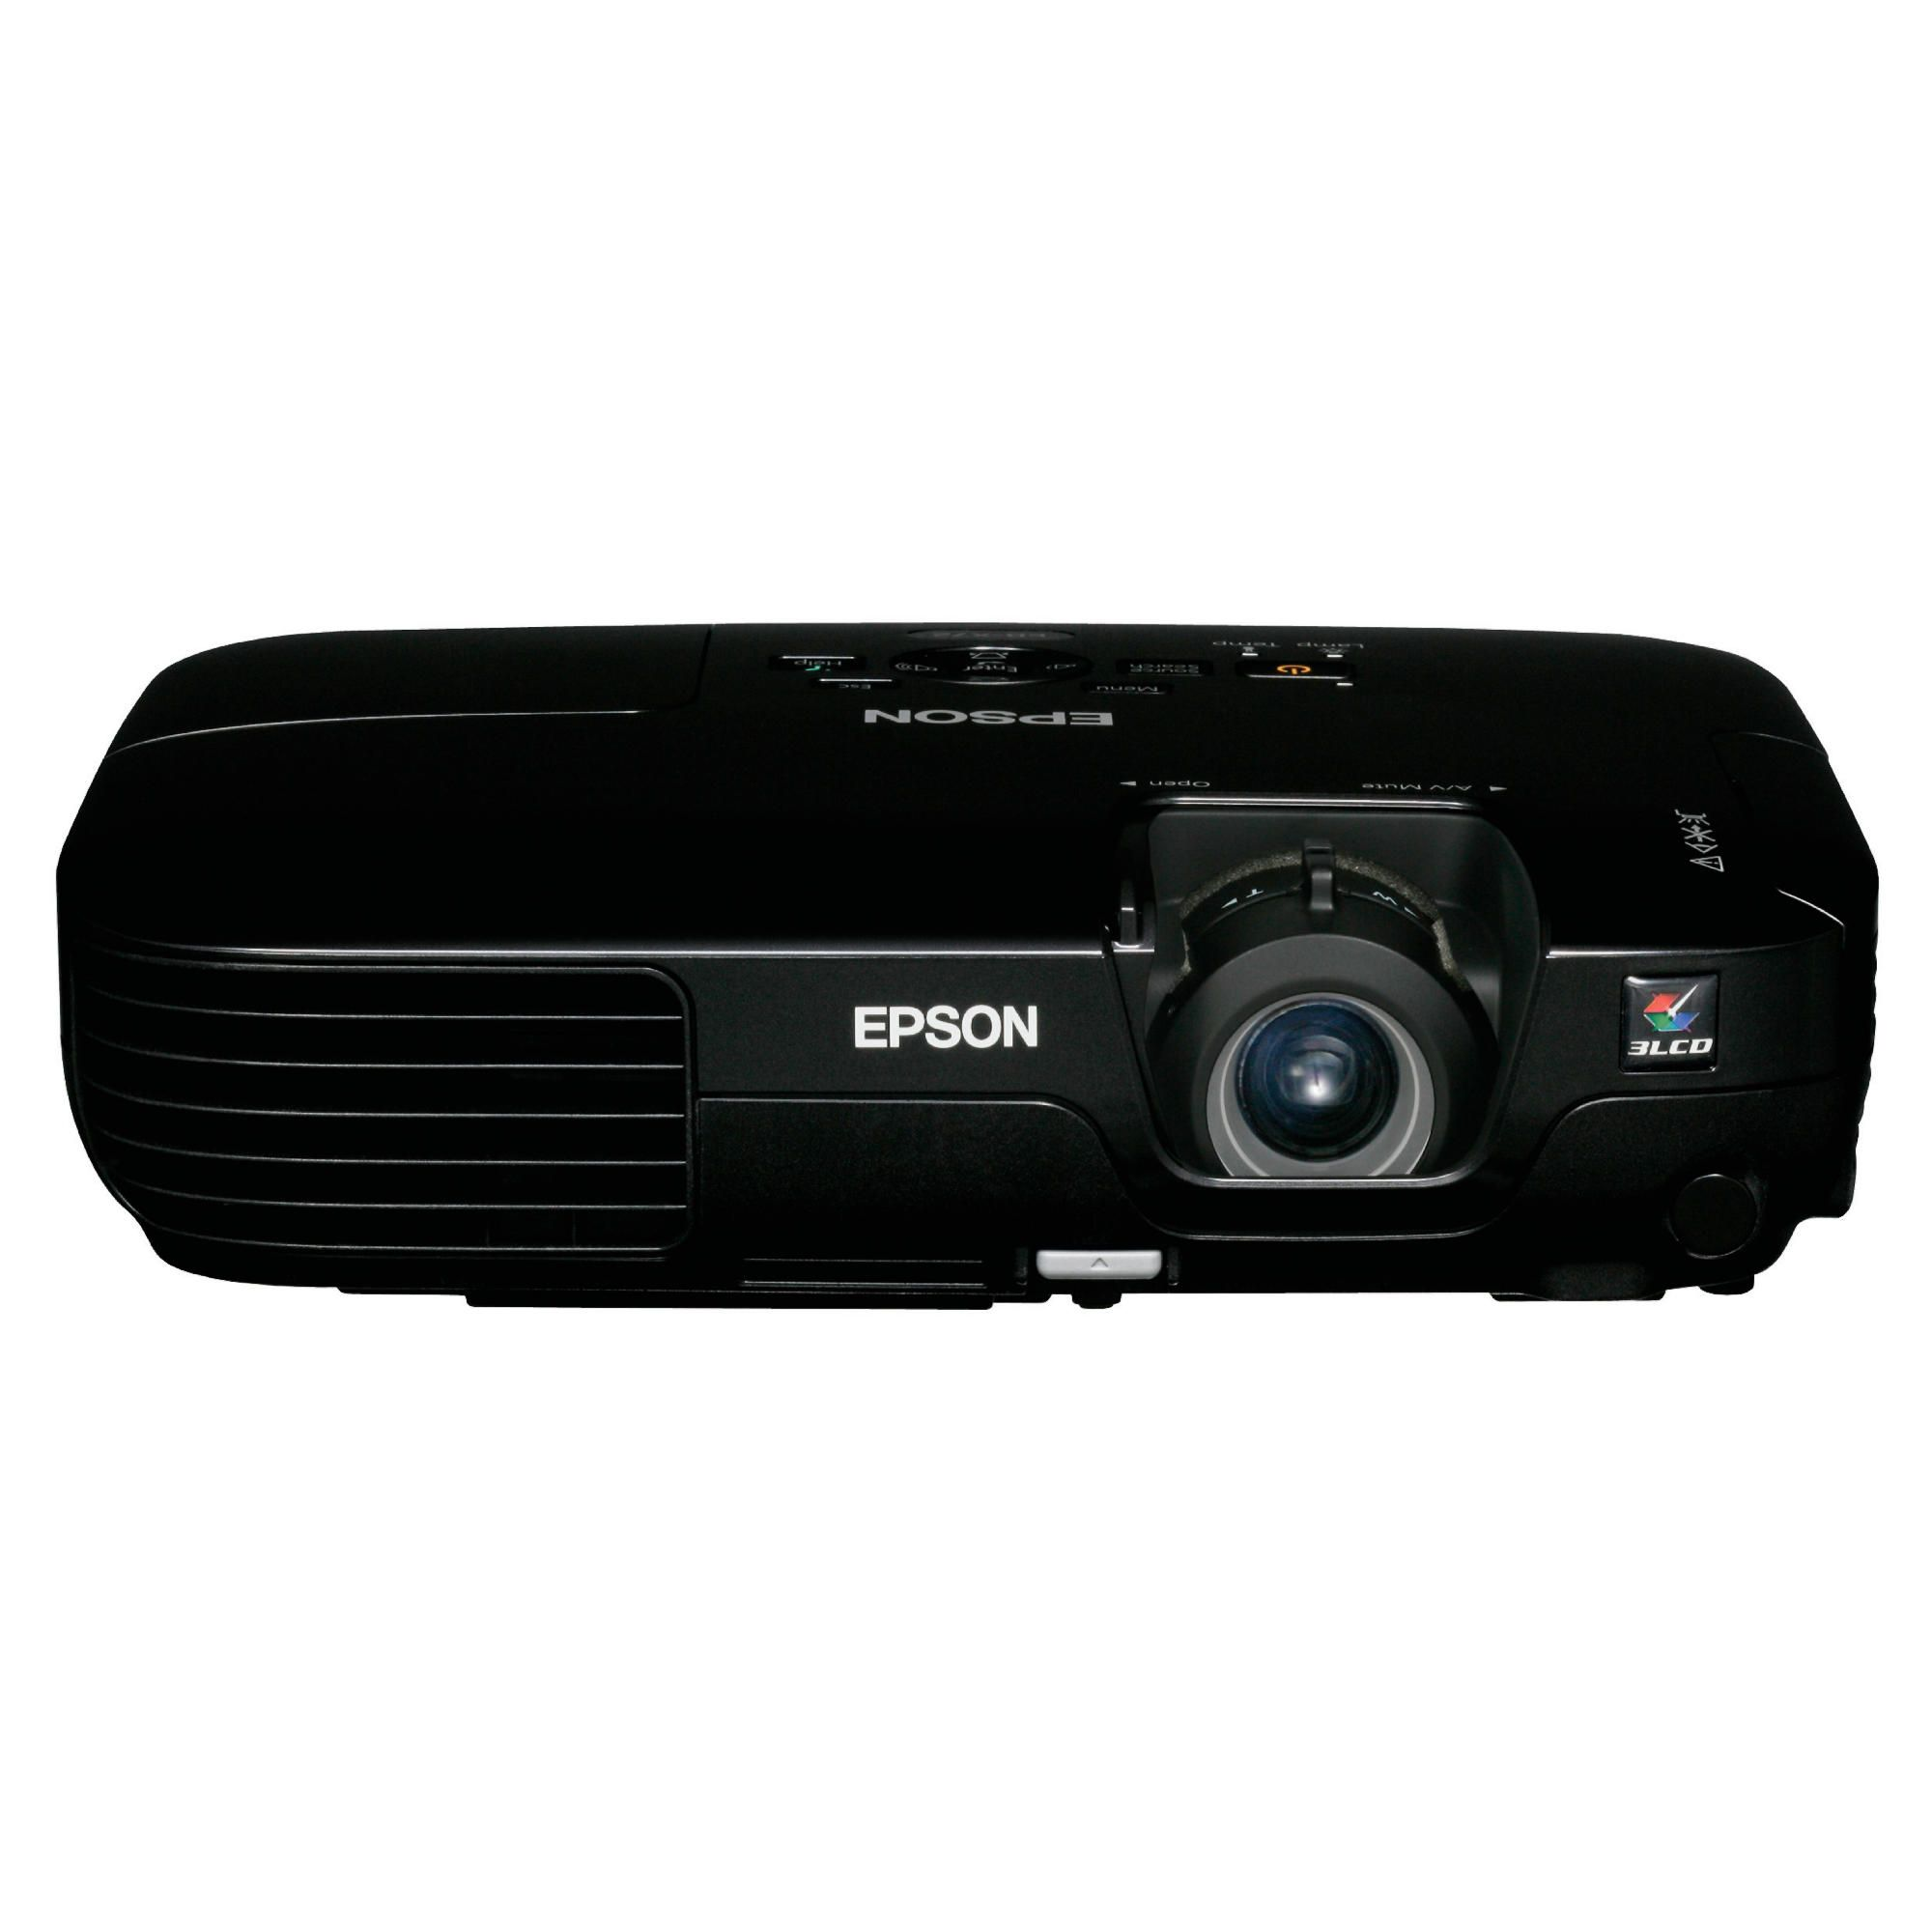 Epson X72 Home Office Projector at Tesco Direct